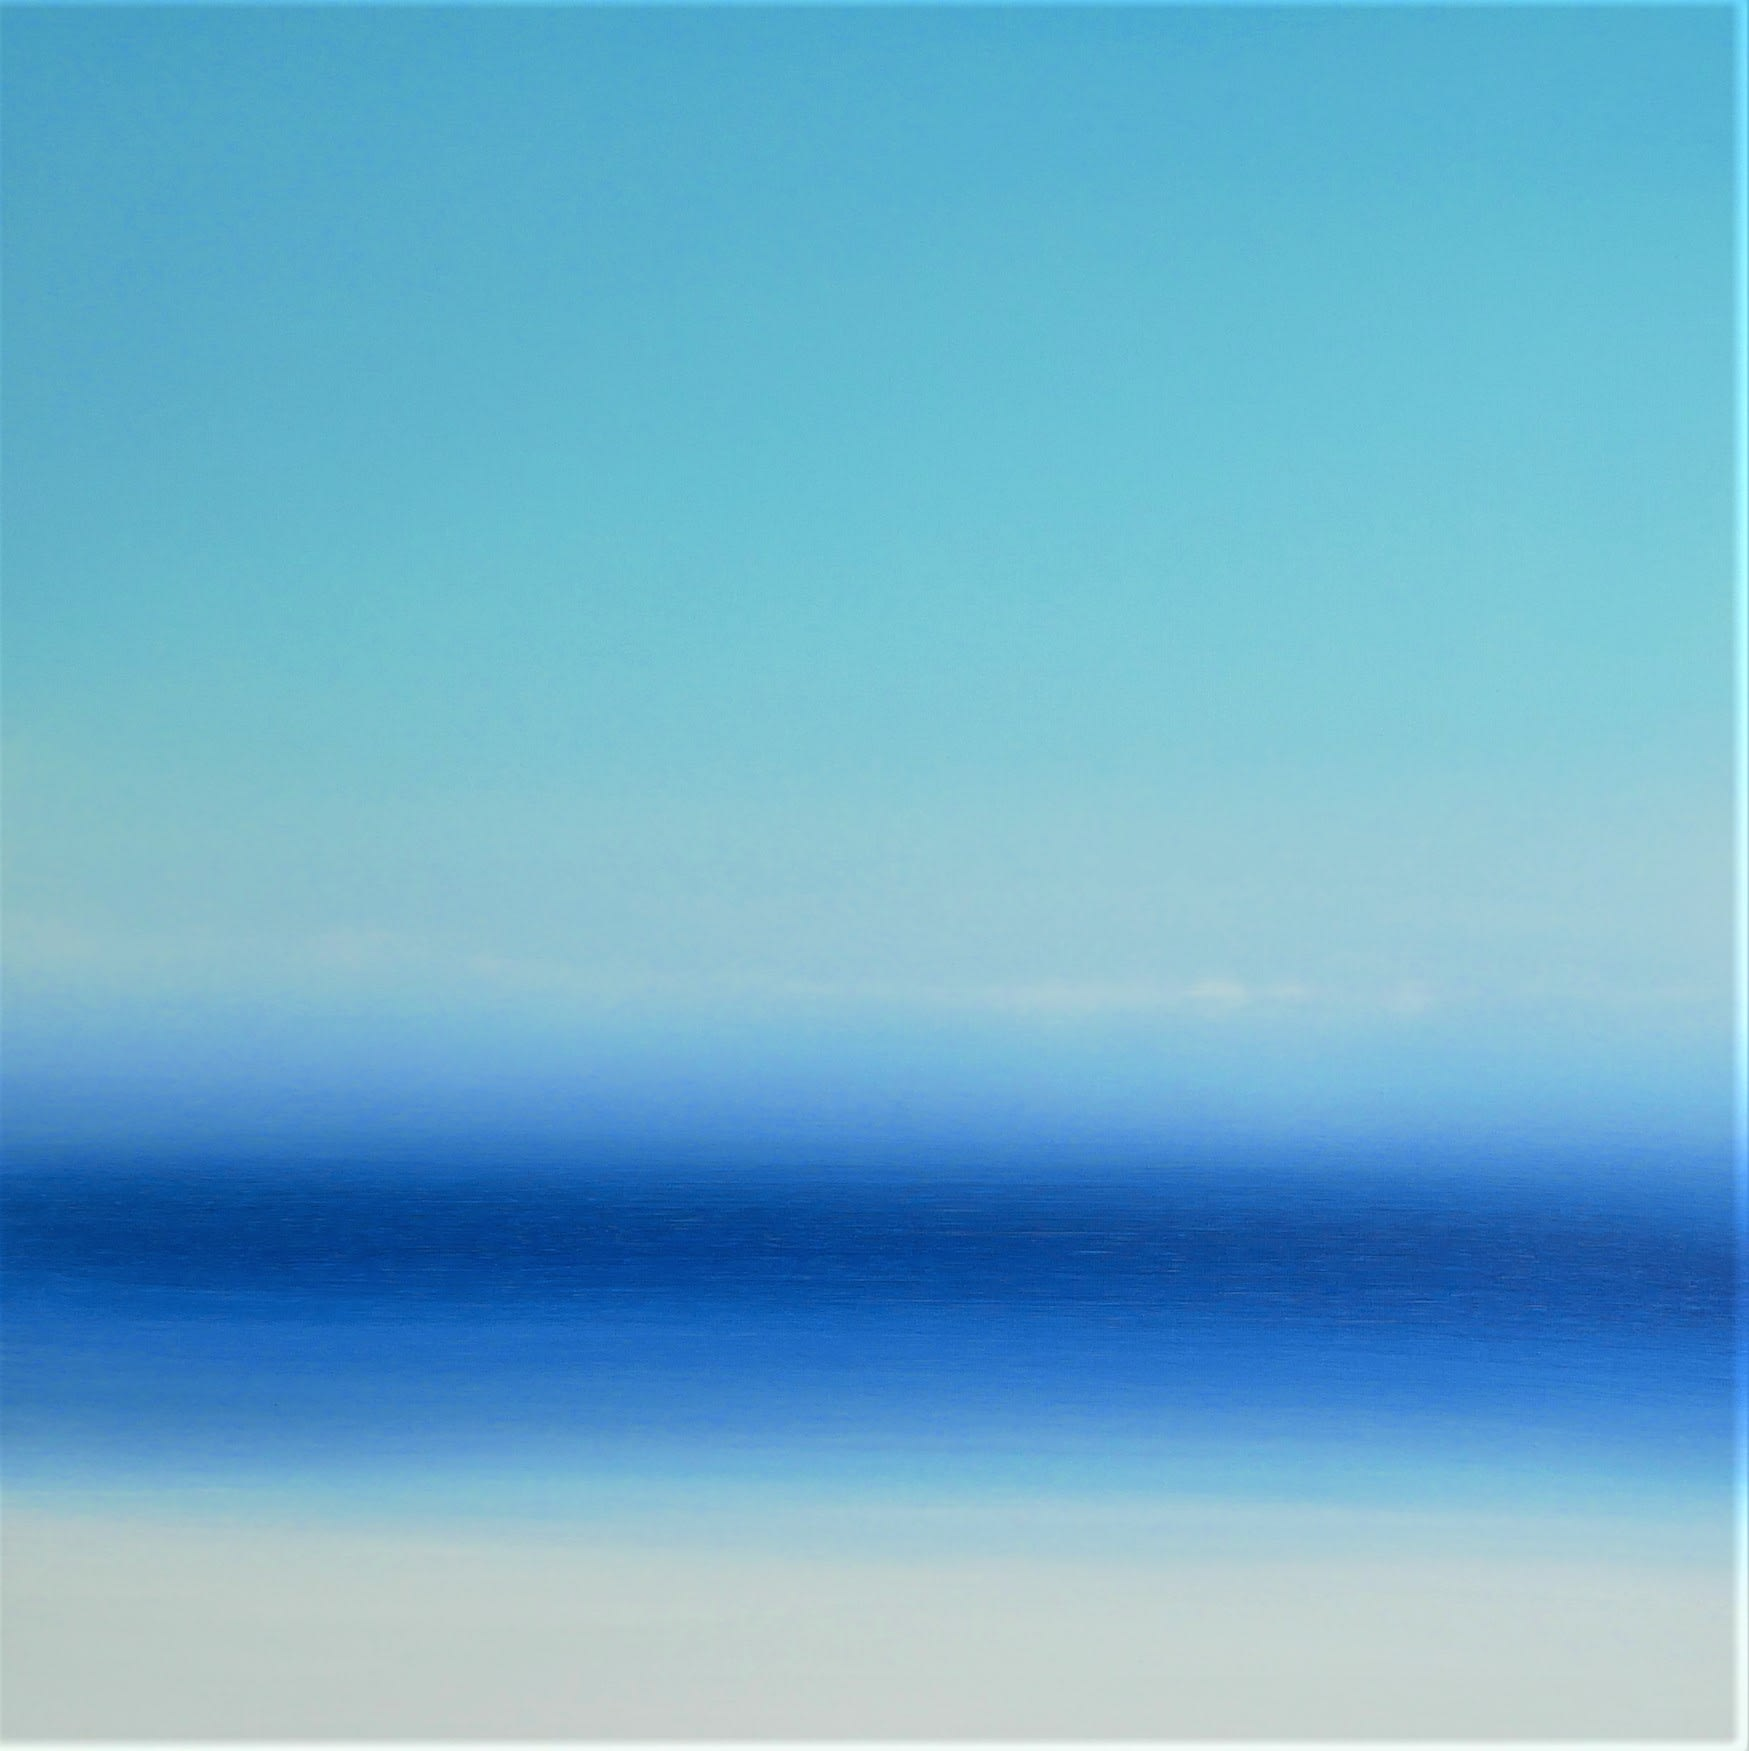 """<span class=""""link fancybox-details-link""""><a href=""""/store/artworks/8069-martyn-perryman-summer-peace-st-ives-1-2021/"""">View Detail Page</a></span><div class=""""artist""""><strong>Martyn Perryman</strong></div> <div class=""""title""""><em>Summer Peace St Ives 1</em>, 2021</div> <div class=""""signed_and_dated"""">signed on verso</div> <div class=""""medium"""">oil on canvas <br /> framed</div> <div class=""""dimensions"""">canvas: 70 x 70 cm <br /> framed: 80 x 80 cm</div><div class=""""price"""">£1,100.00</div><div class=""""copyright_line"""">Own Art: £110 x 10 Months, 0% APR</div>"""